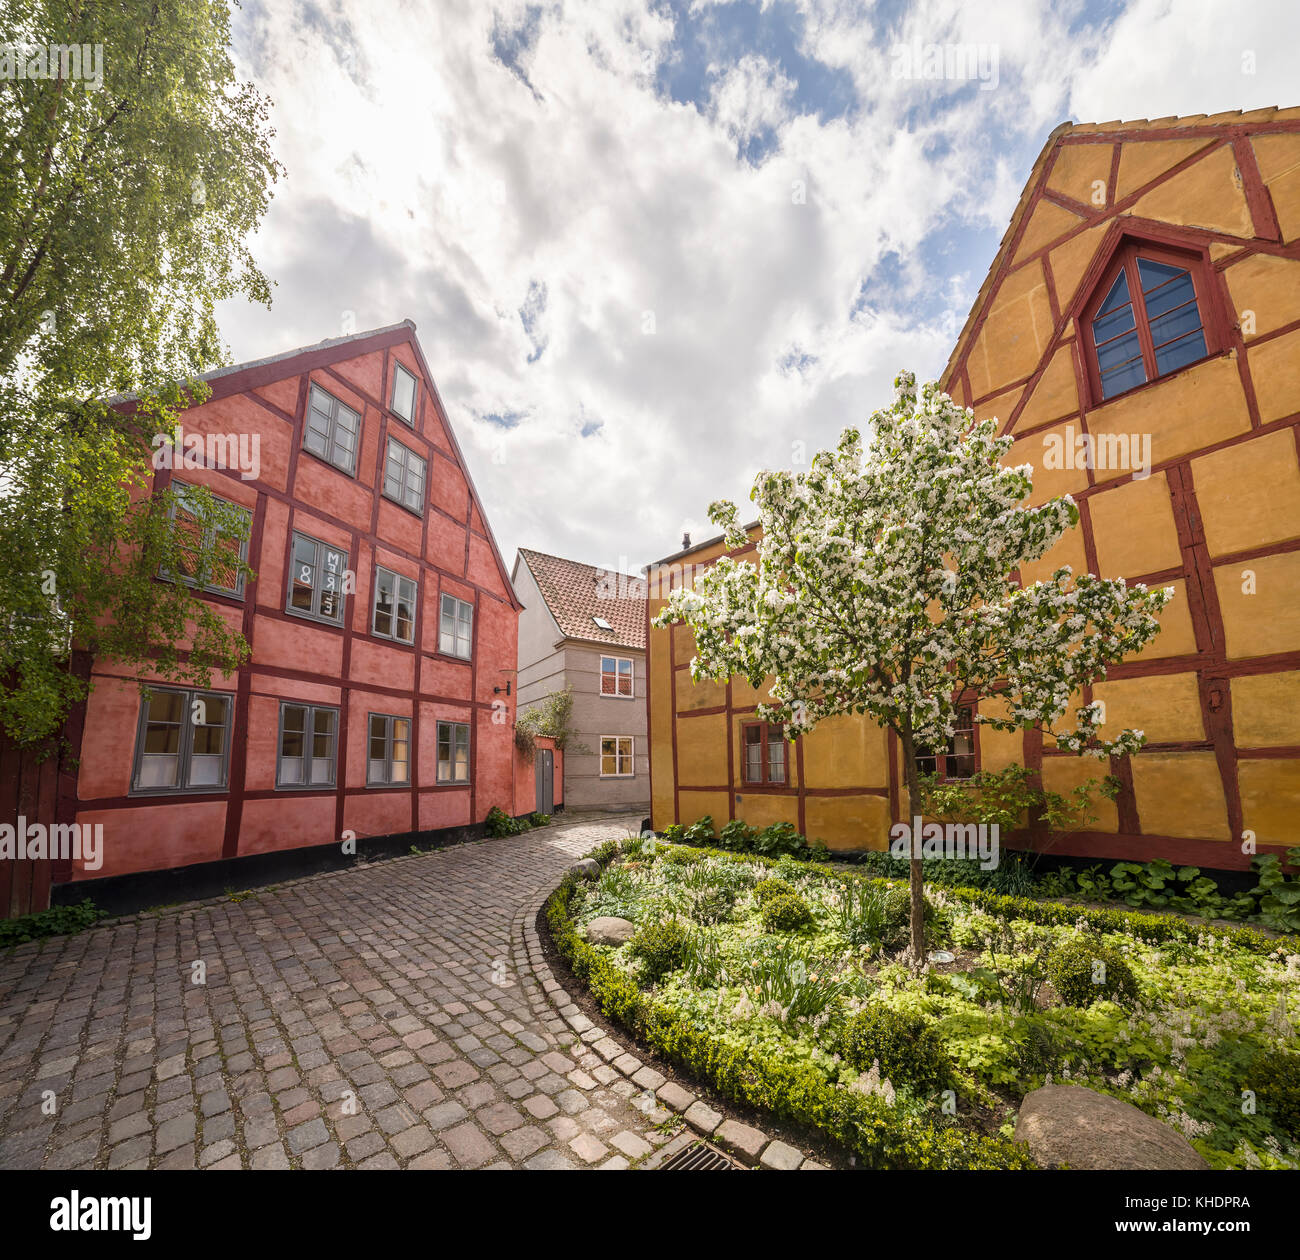 Narrow residential street in the medieval town center of Helsingor / Helsingør, Denmark, Scandinavia. - Stock Image